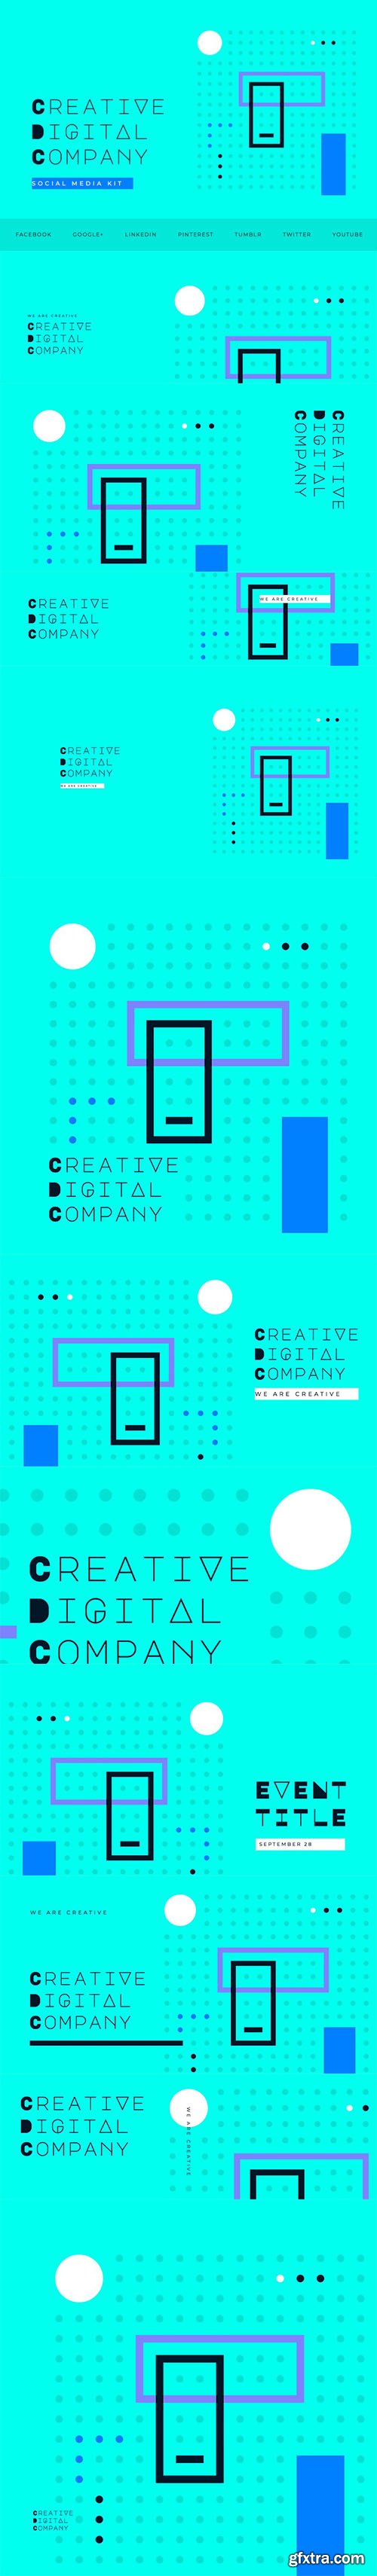 Creative Digital Agency - Social Media Kit